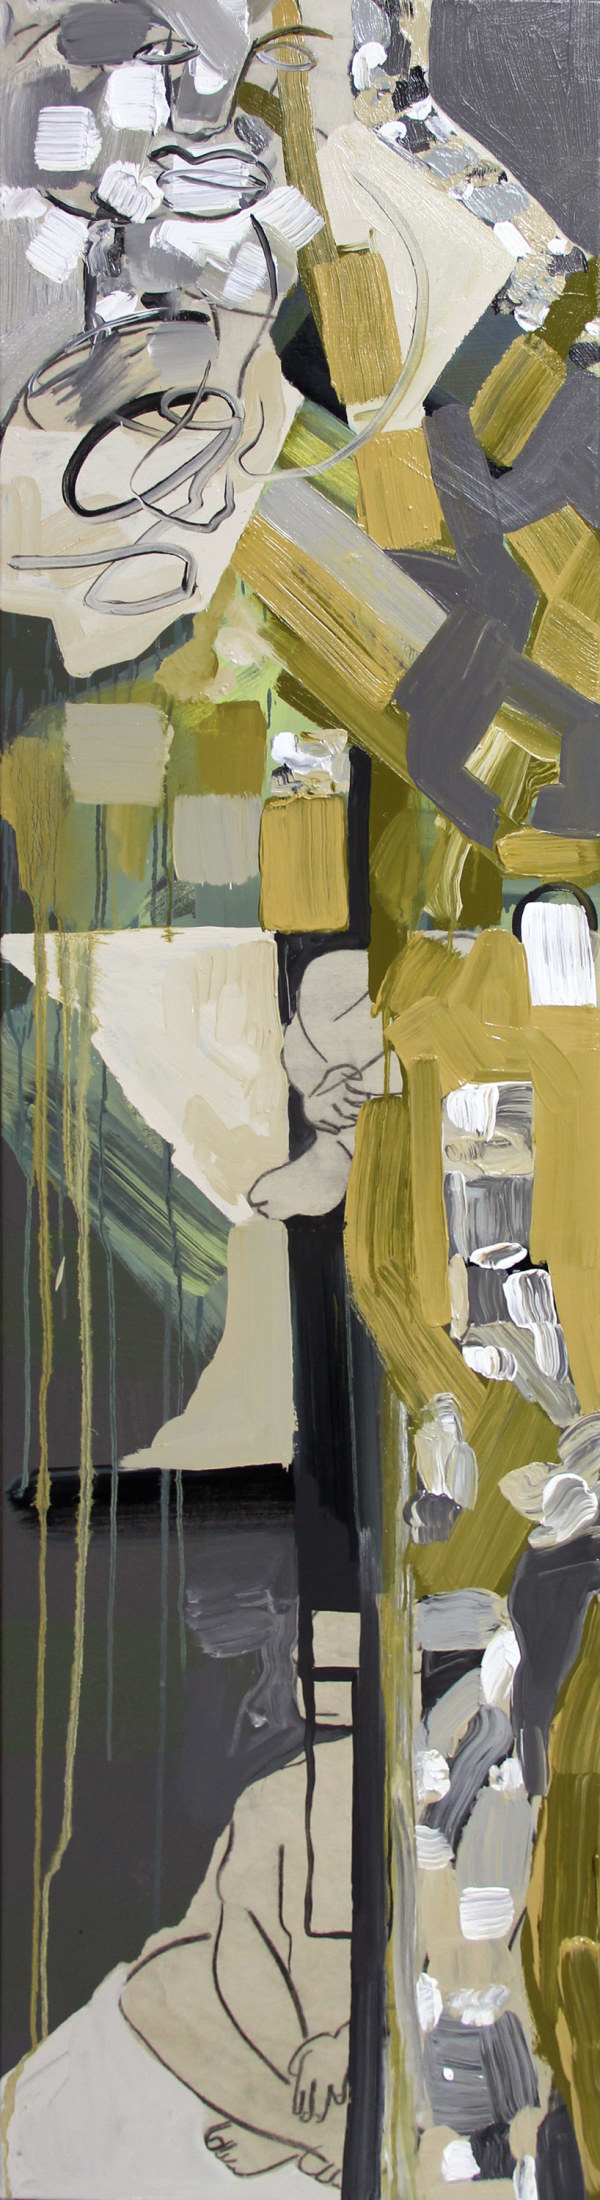 Seated Figures in Urban Landscape by Pamela Staker